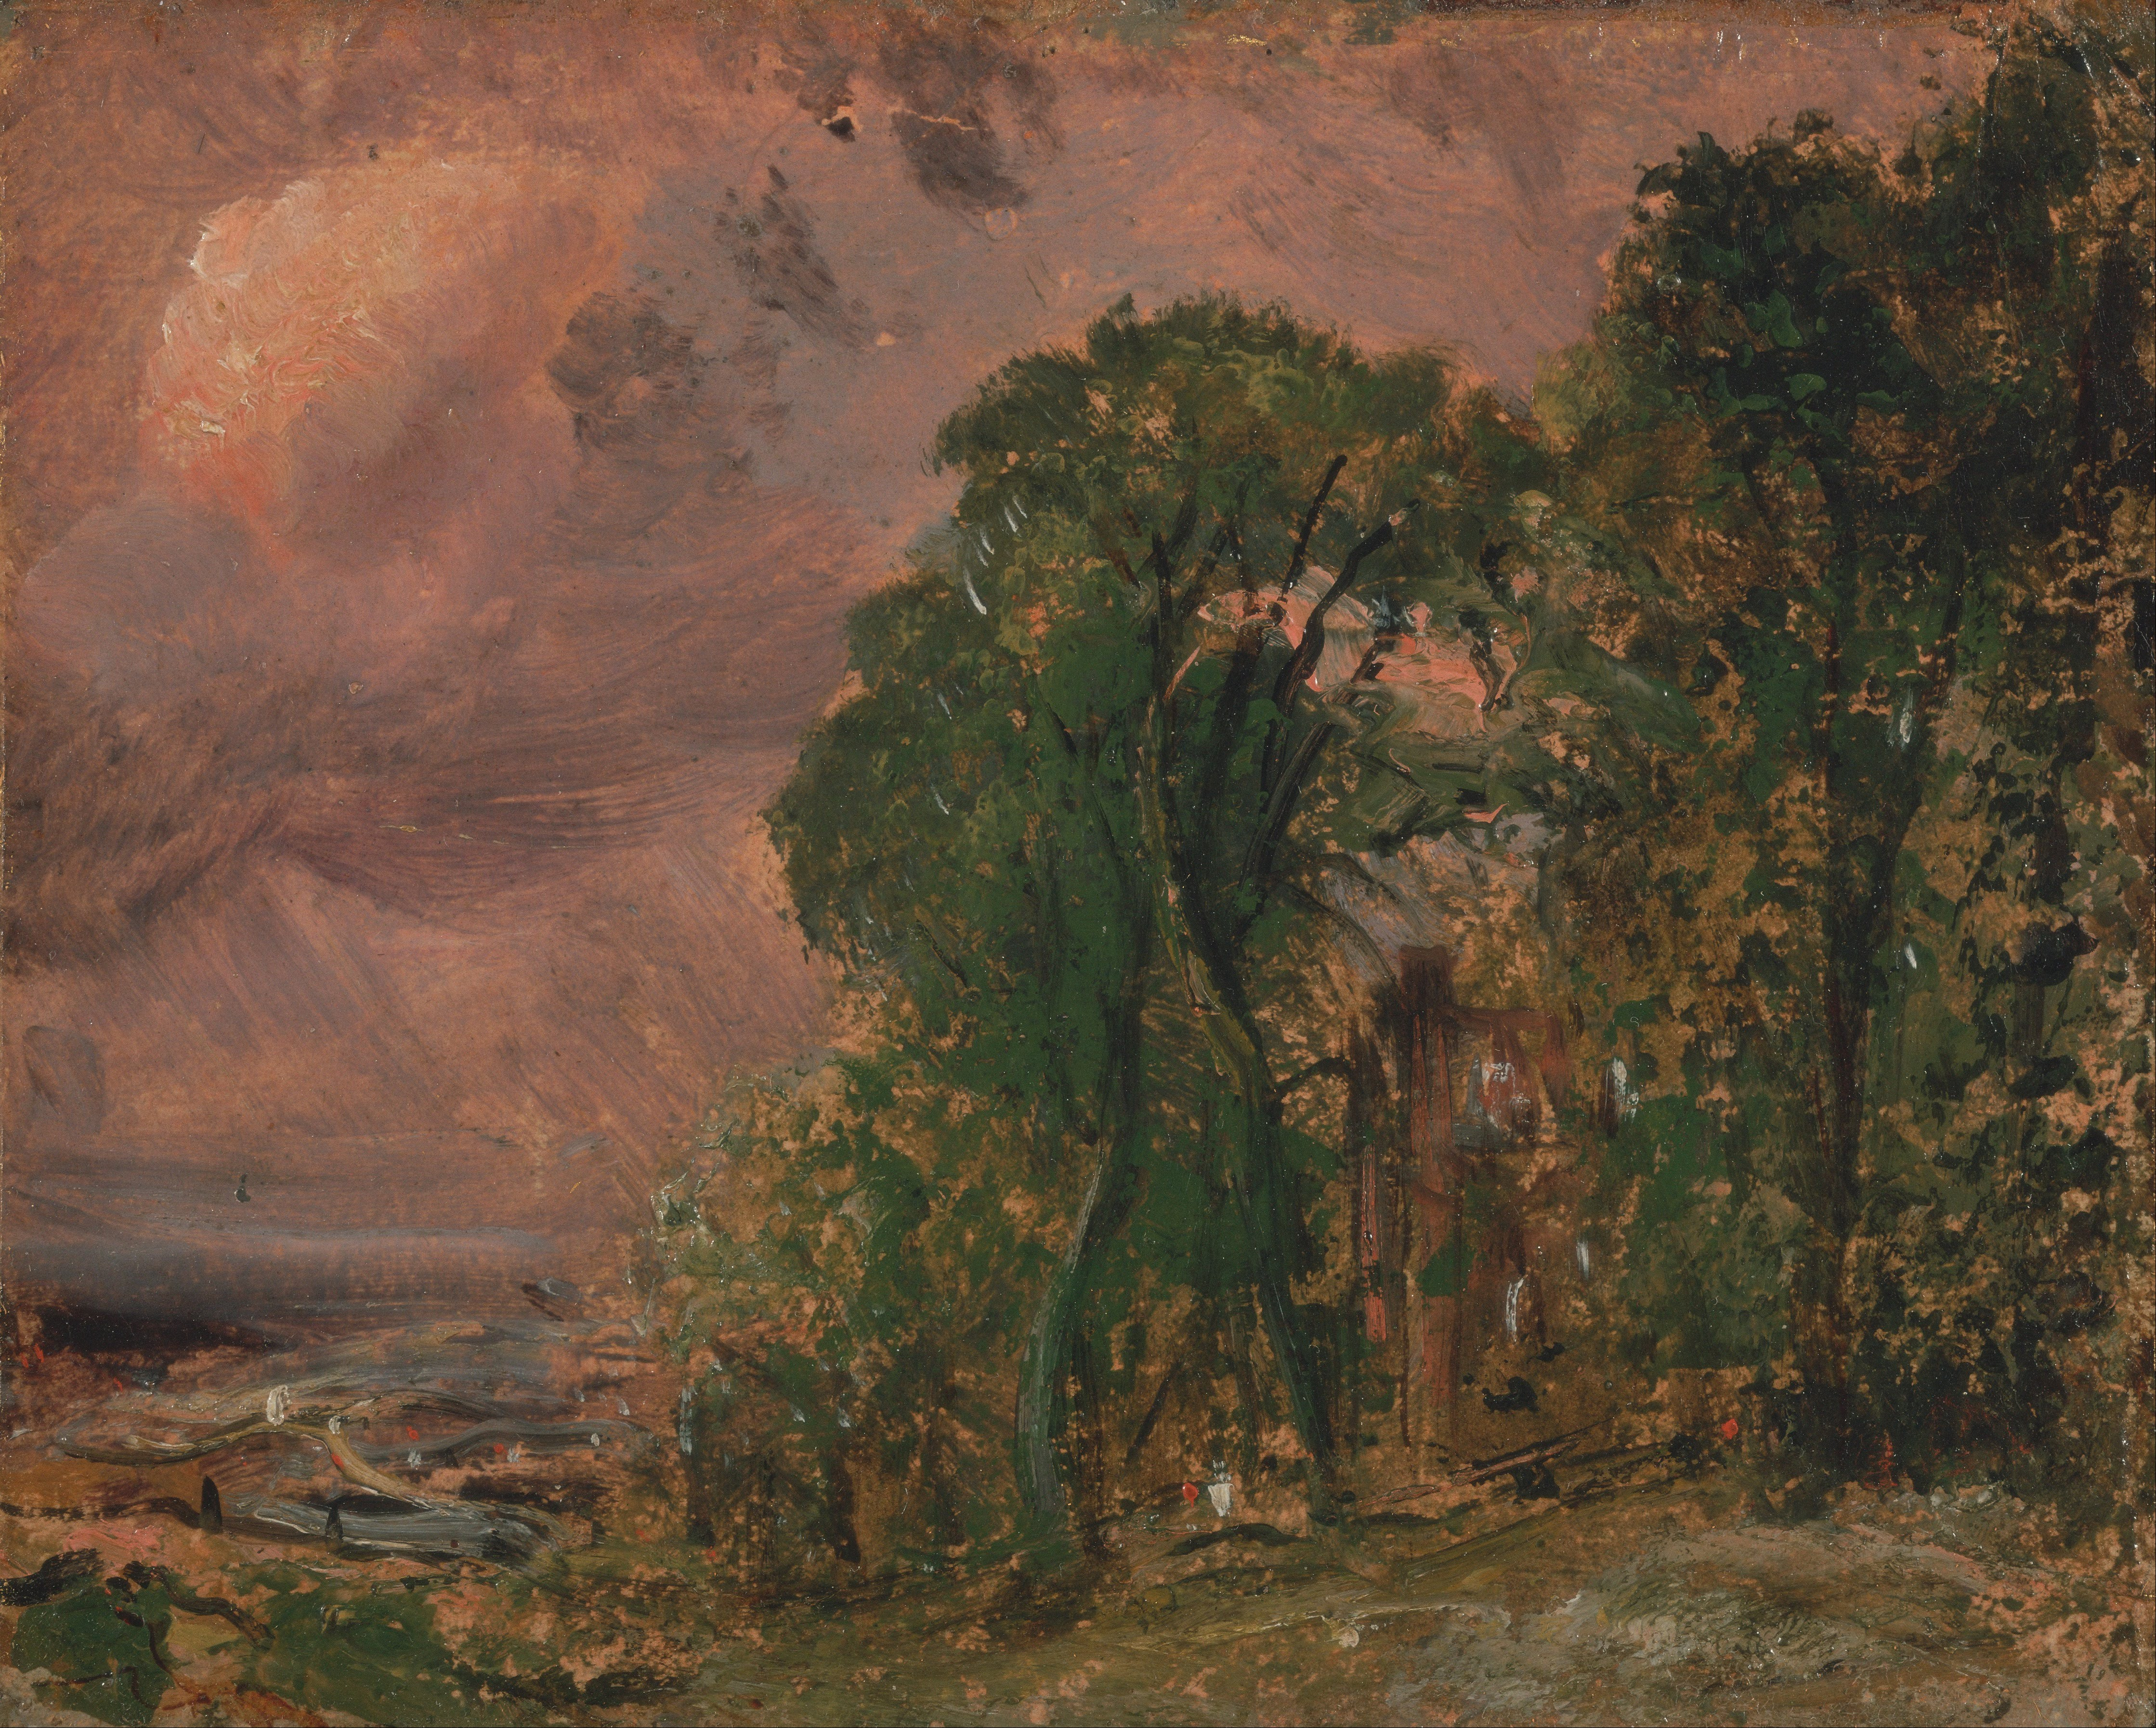 John_Constable_-_A_View_at_Hampstead_with_Stormy_Weather_-_Google_Art_Project